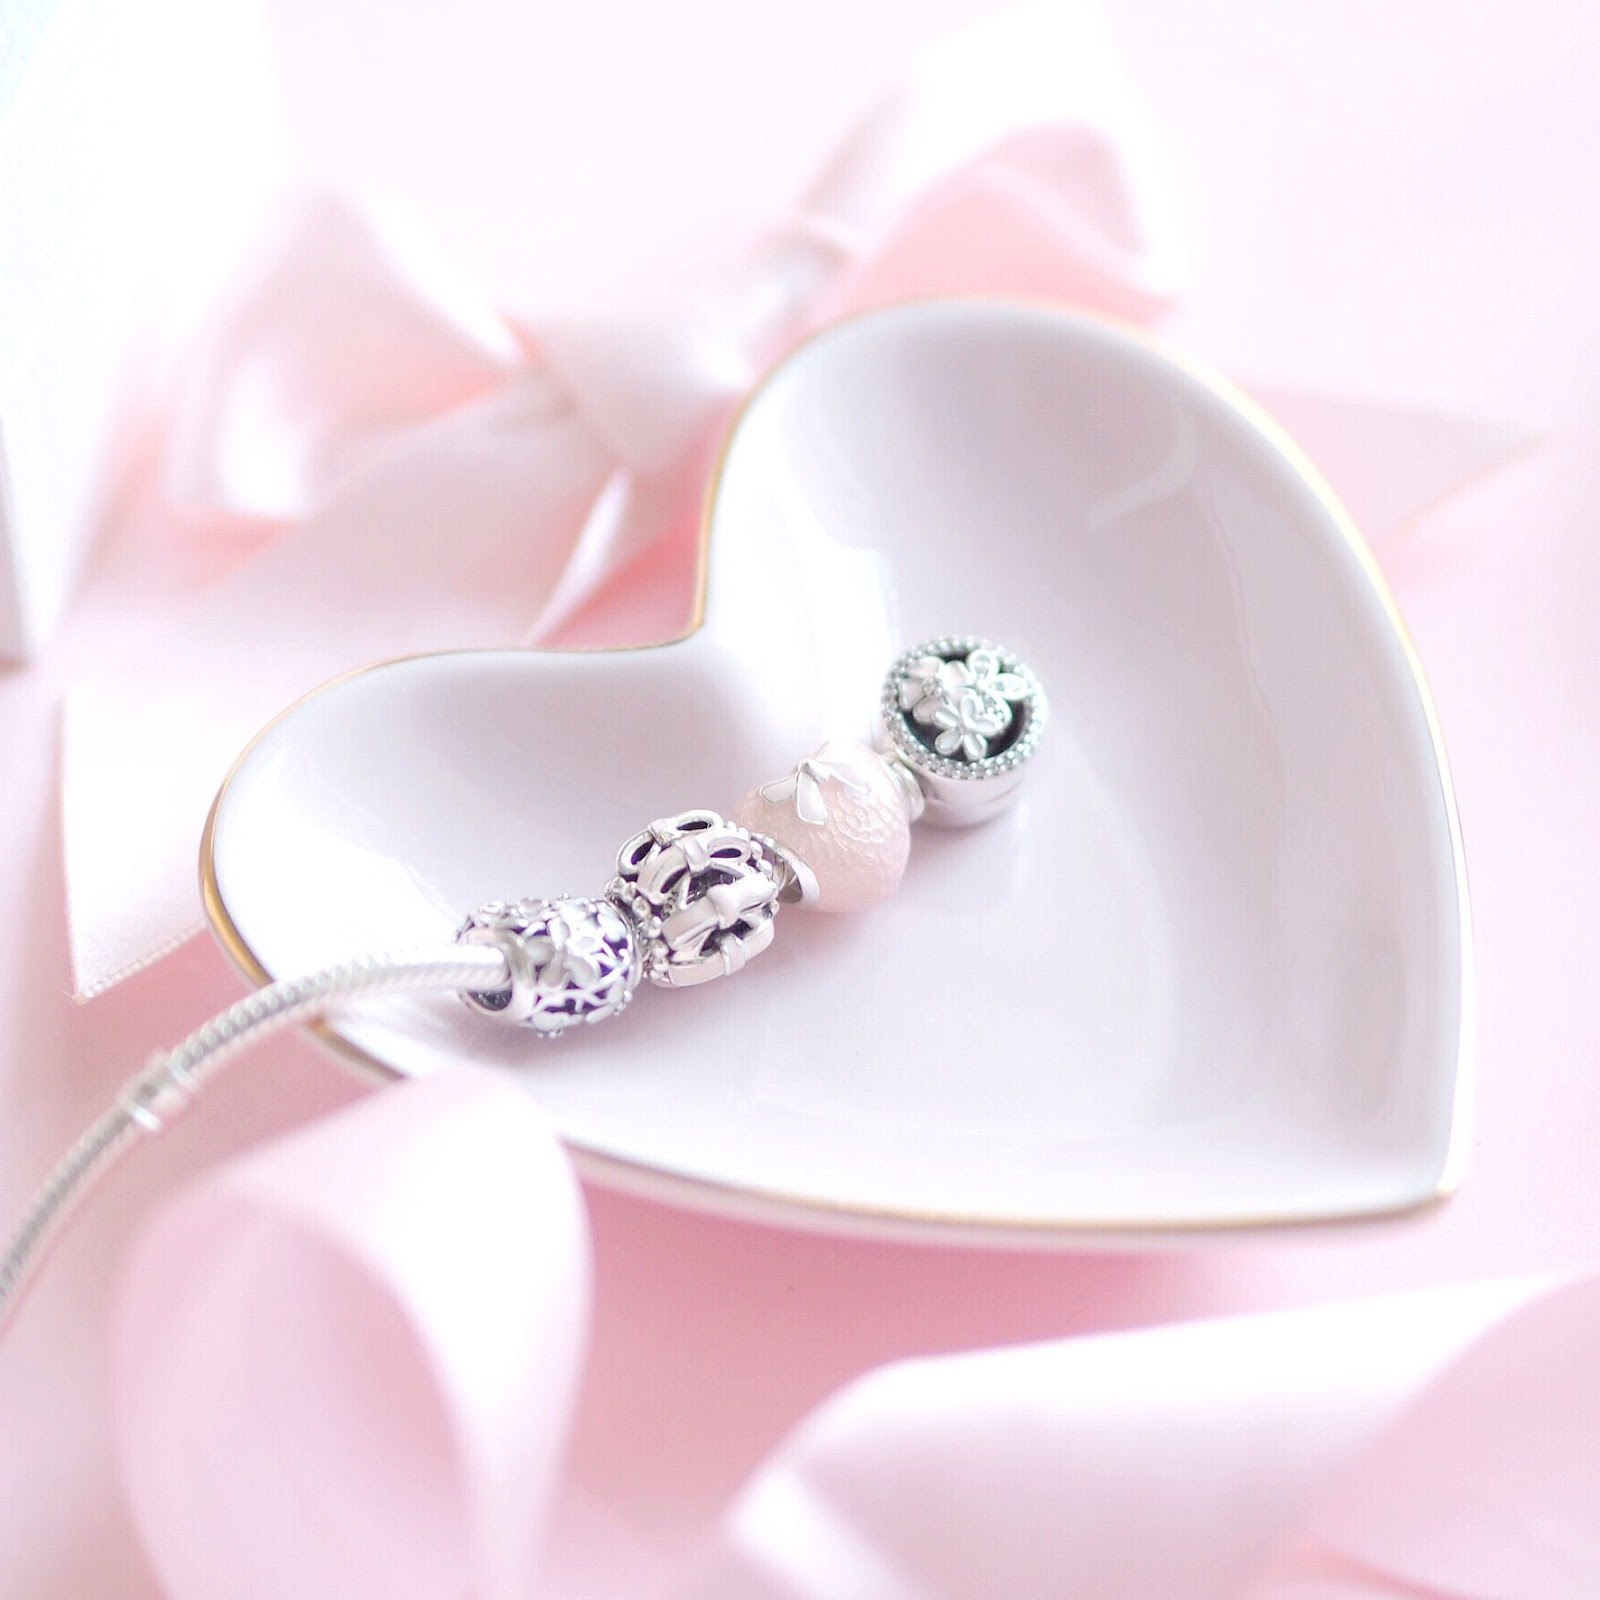 Pandora Pink Bow & Lace Heart Charm | What I Got Treated To On Christmas Day